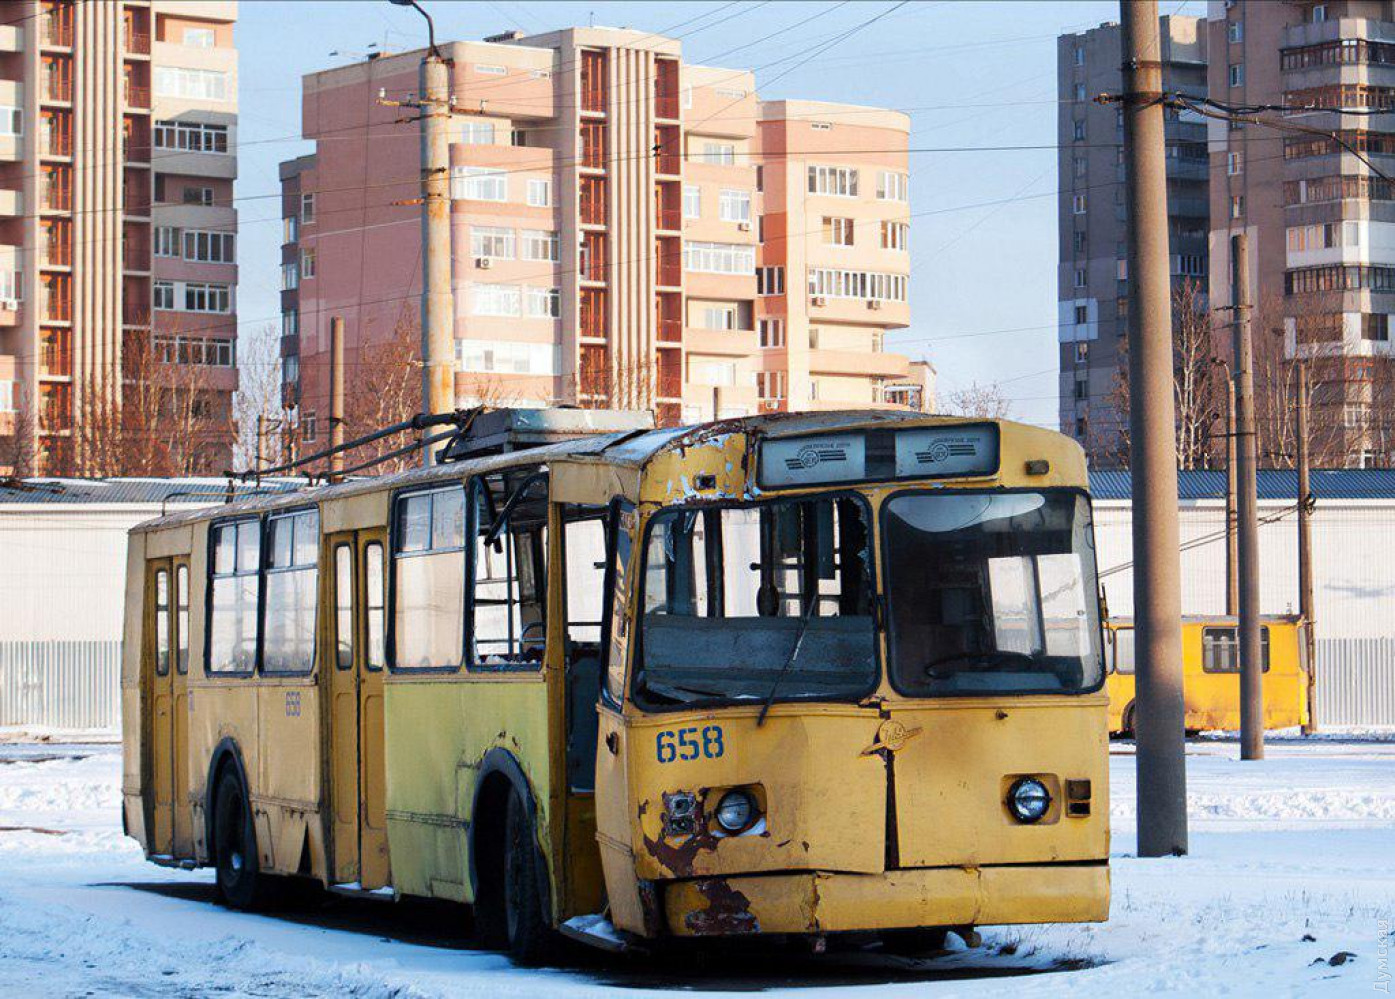 Троллейбус №658 в 2012 году. Фото Little Tram, odessatrolley.com